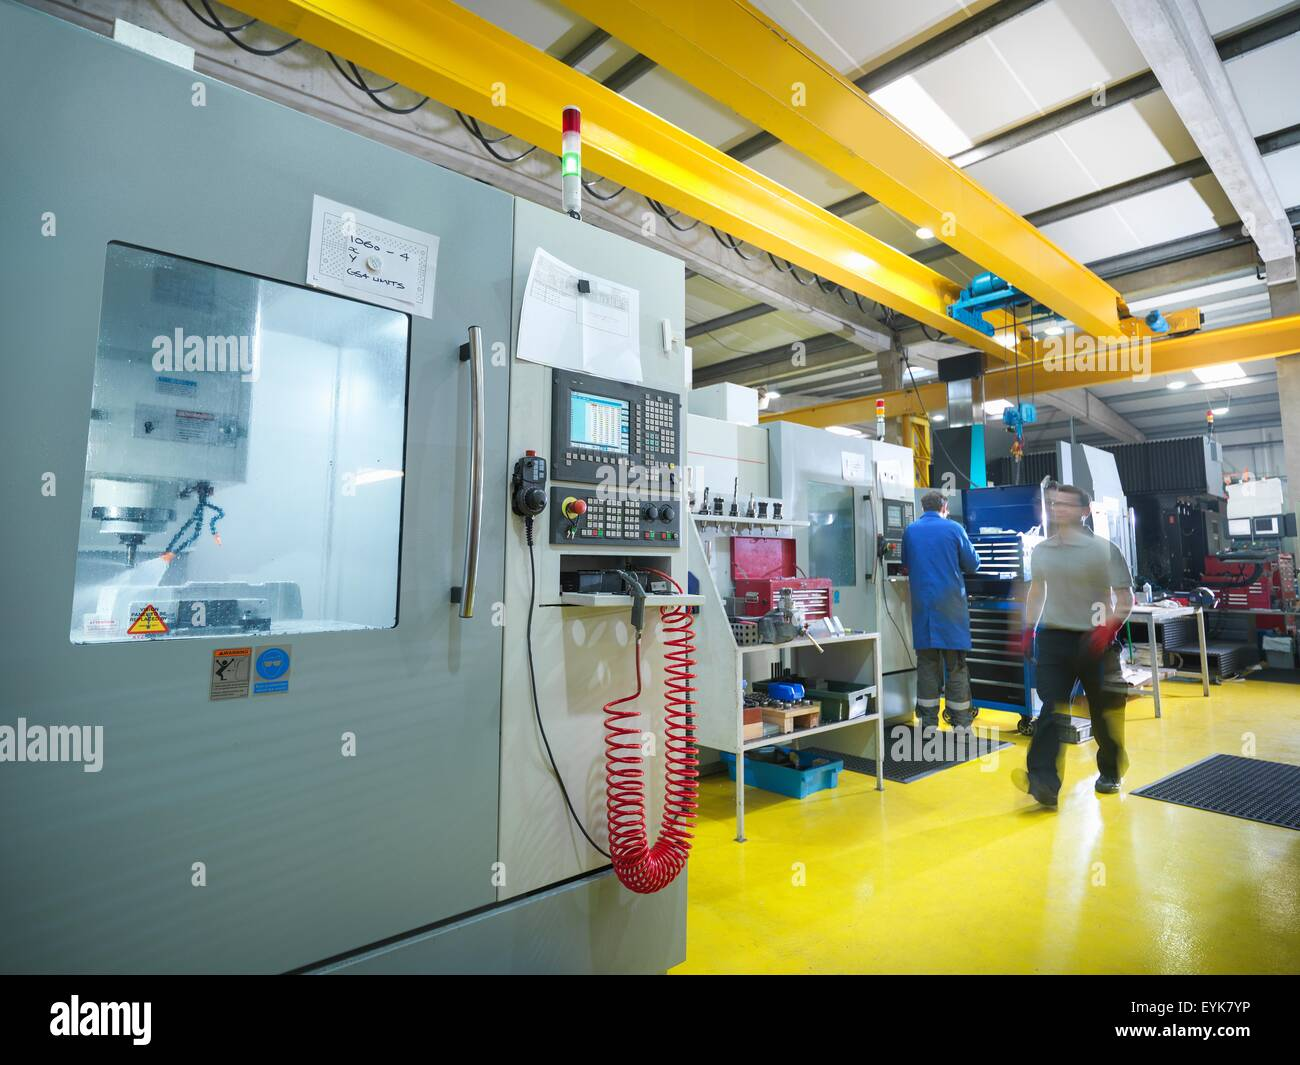 Workers with large CNC machine in plastics factory - Stock Image